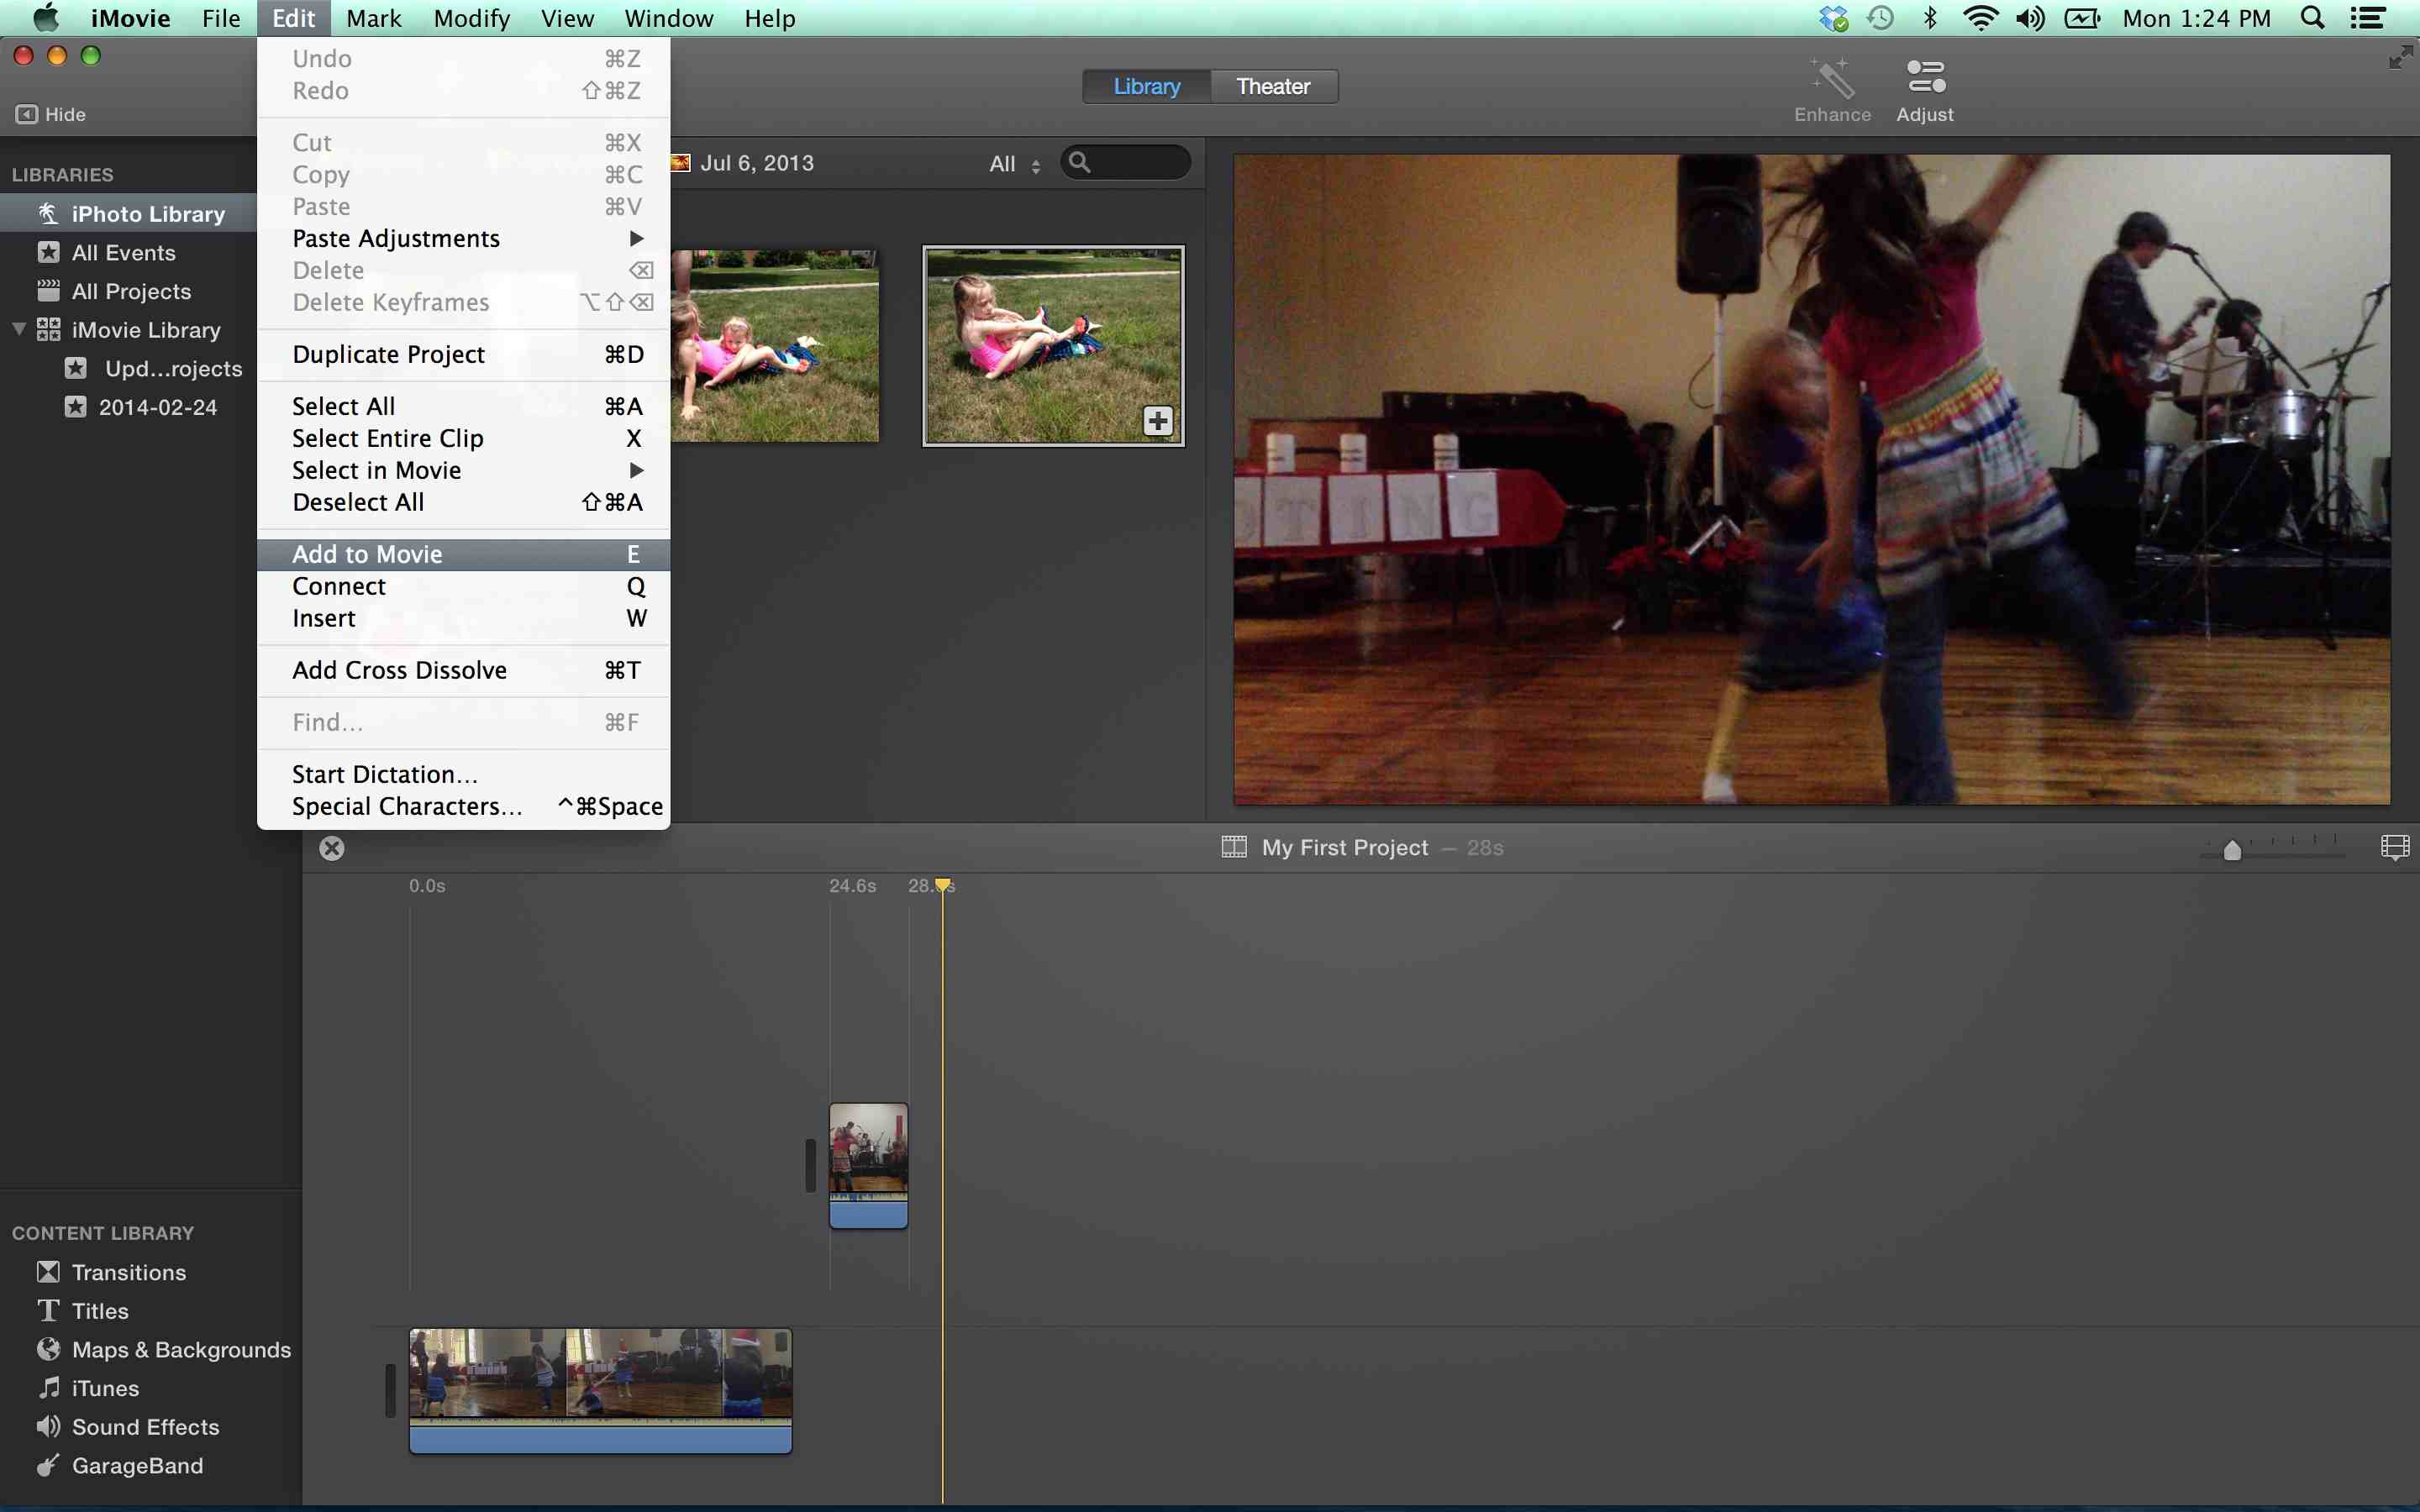 iMovie 10 - Start a New Video Editing Project